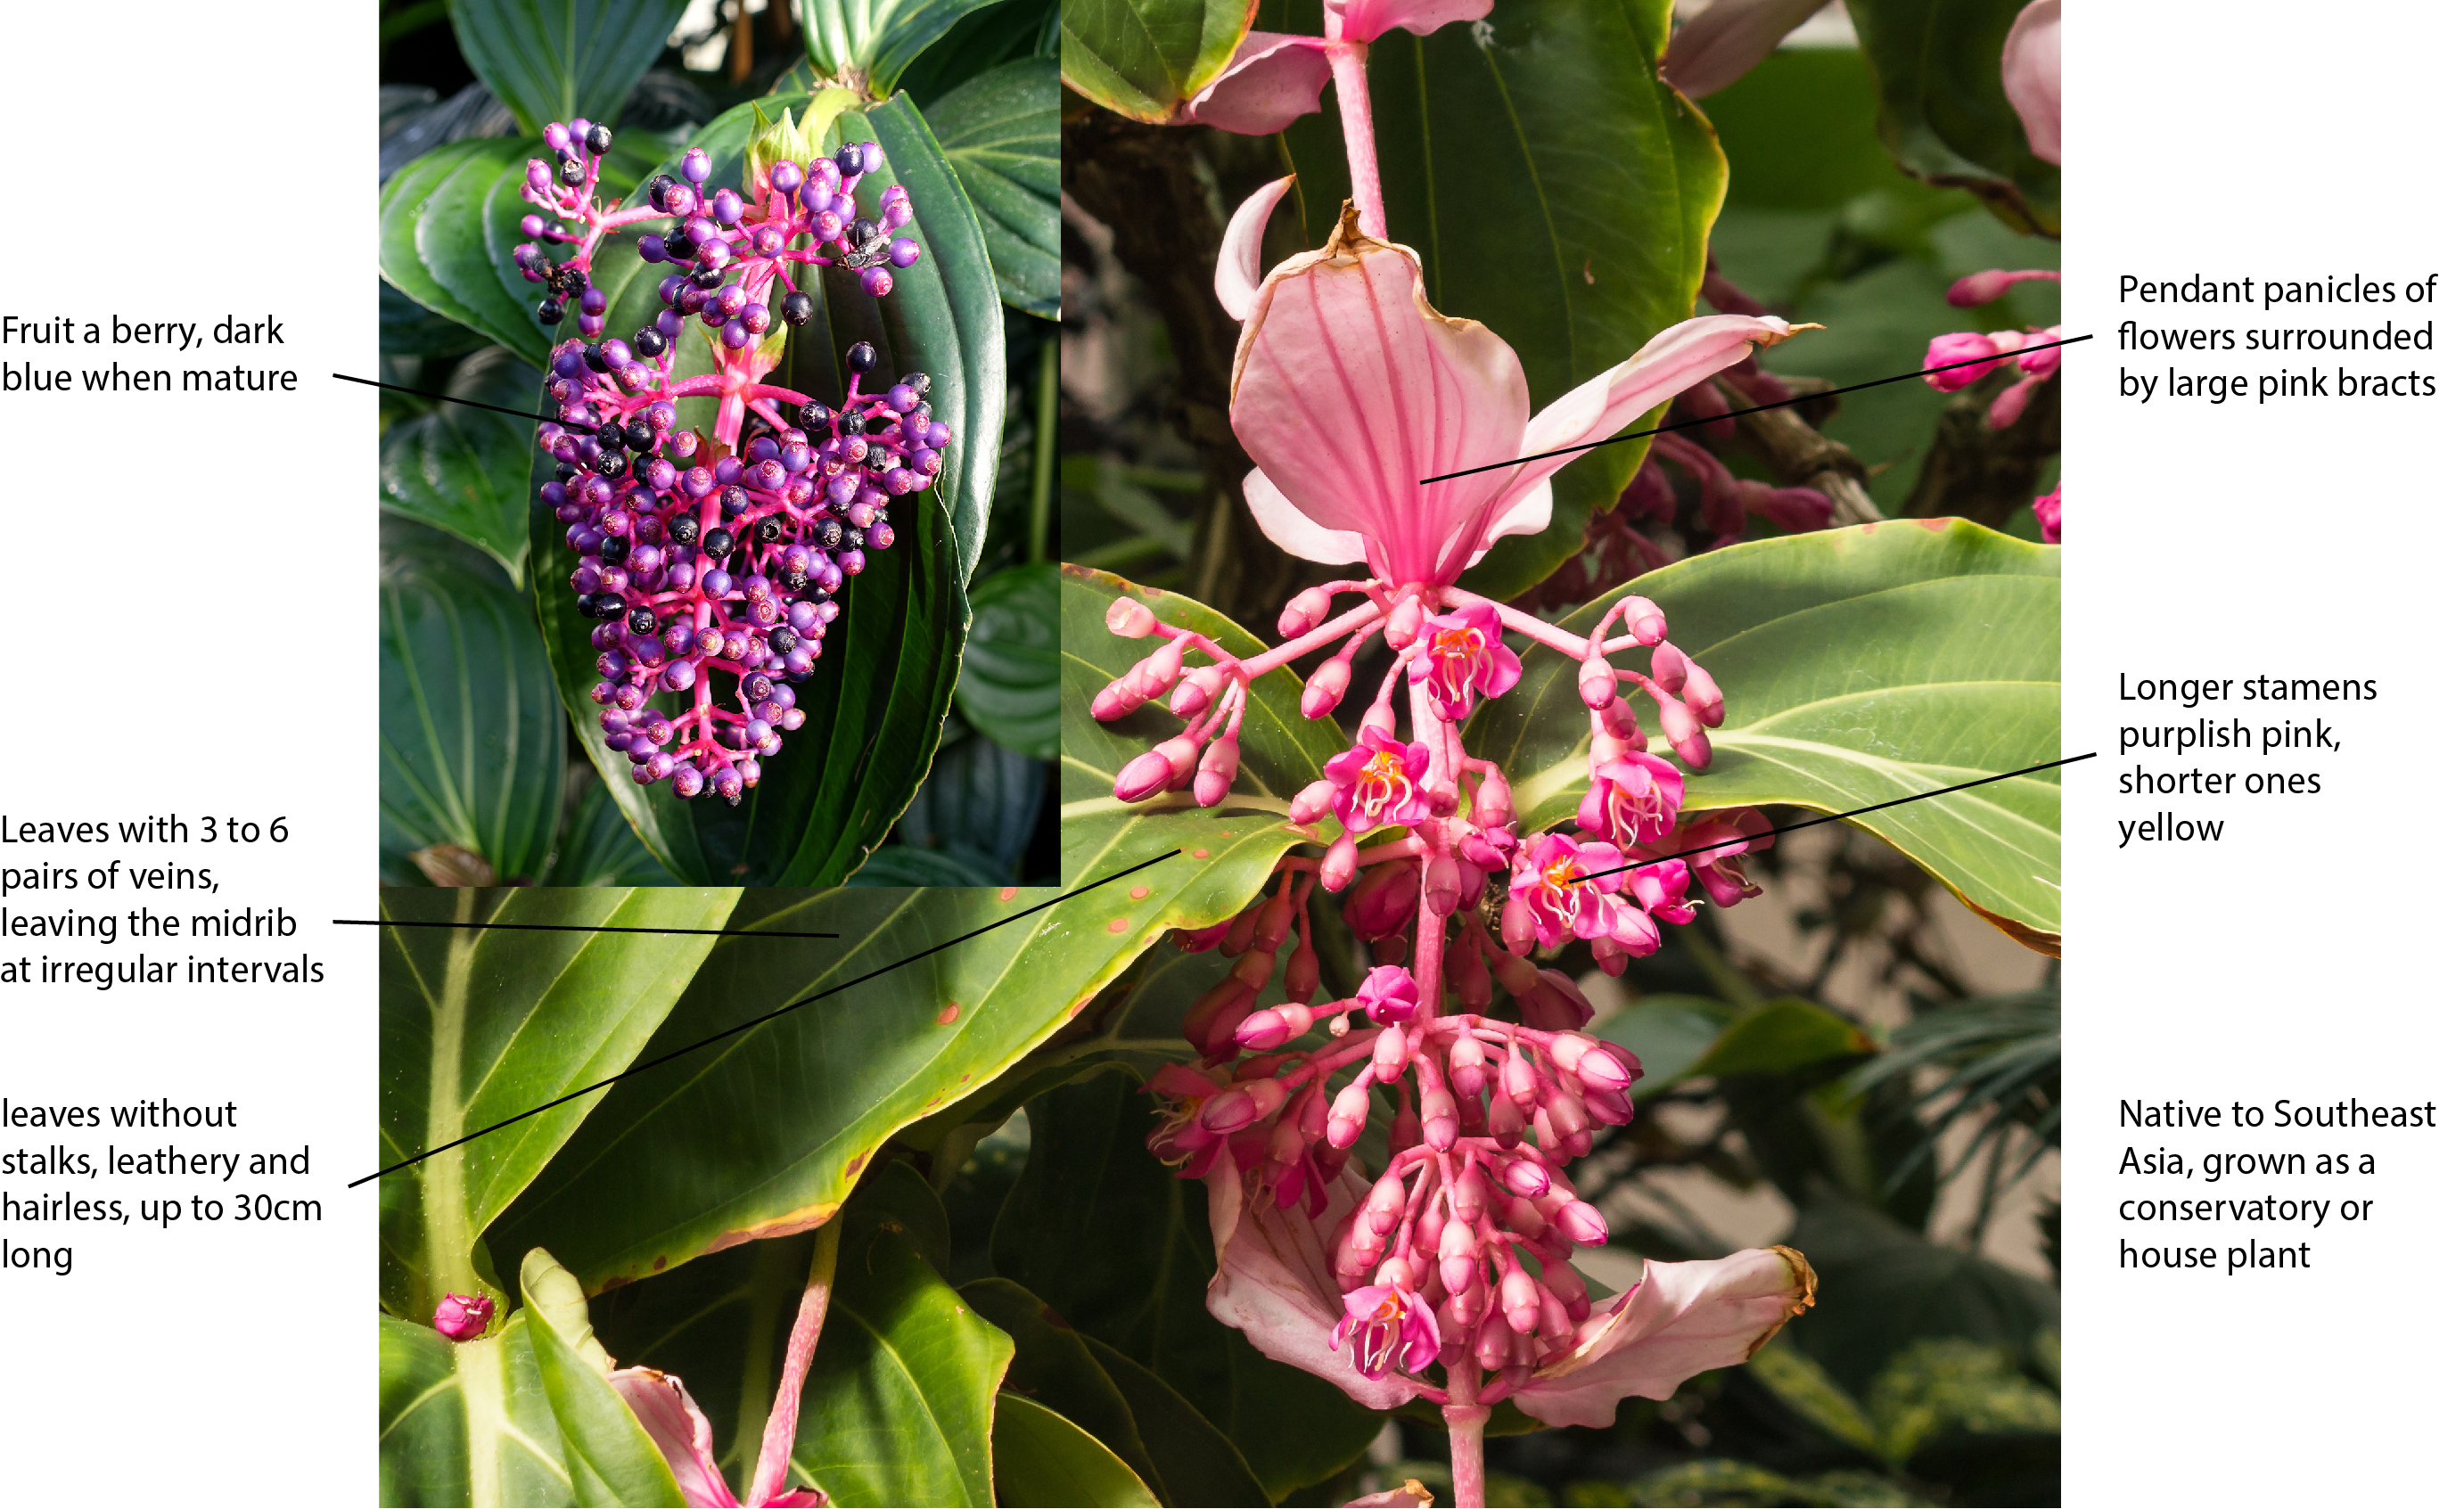 Key features/characters for identifying Medinilla magnifica plants.